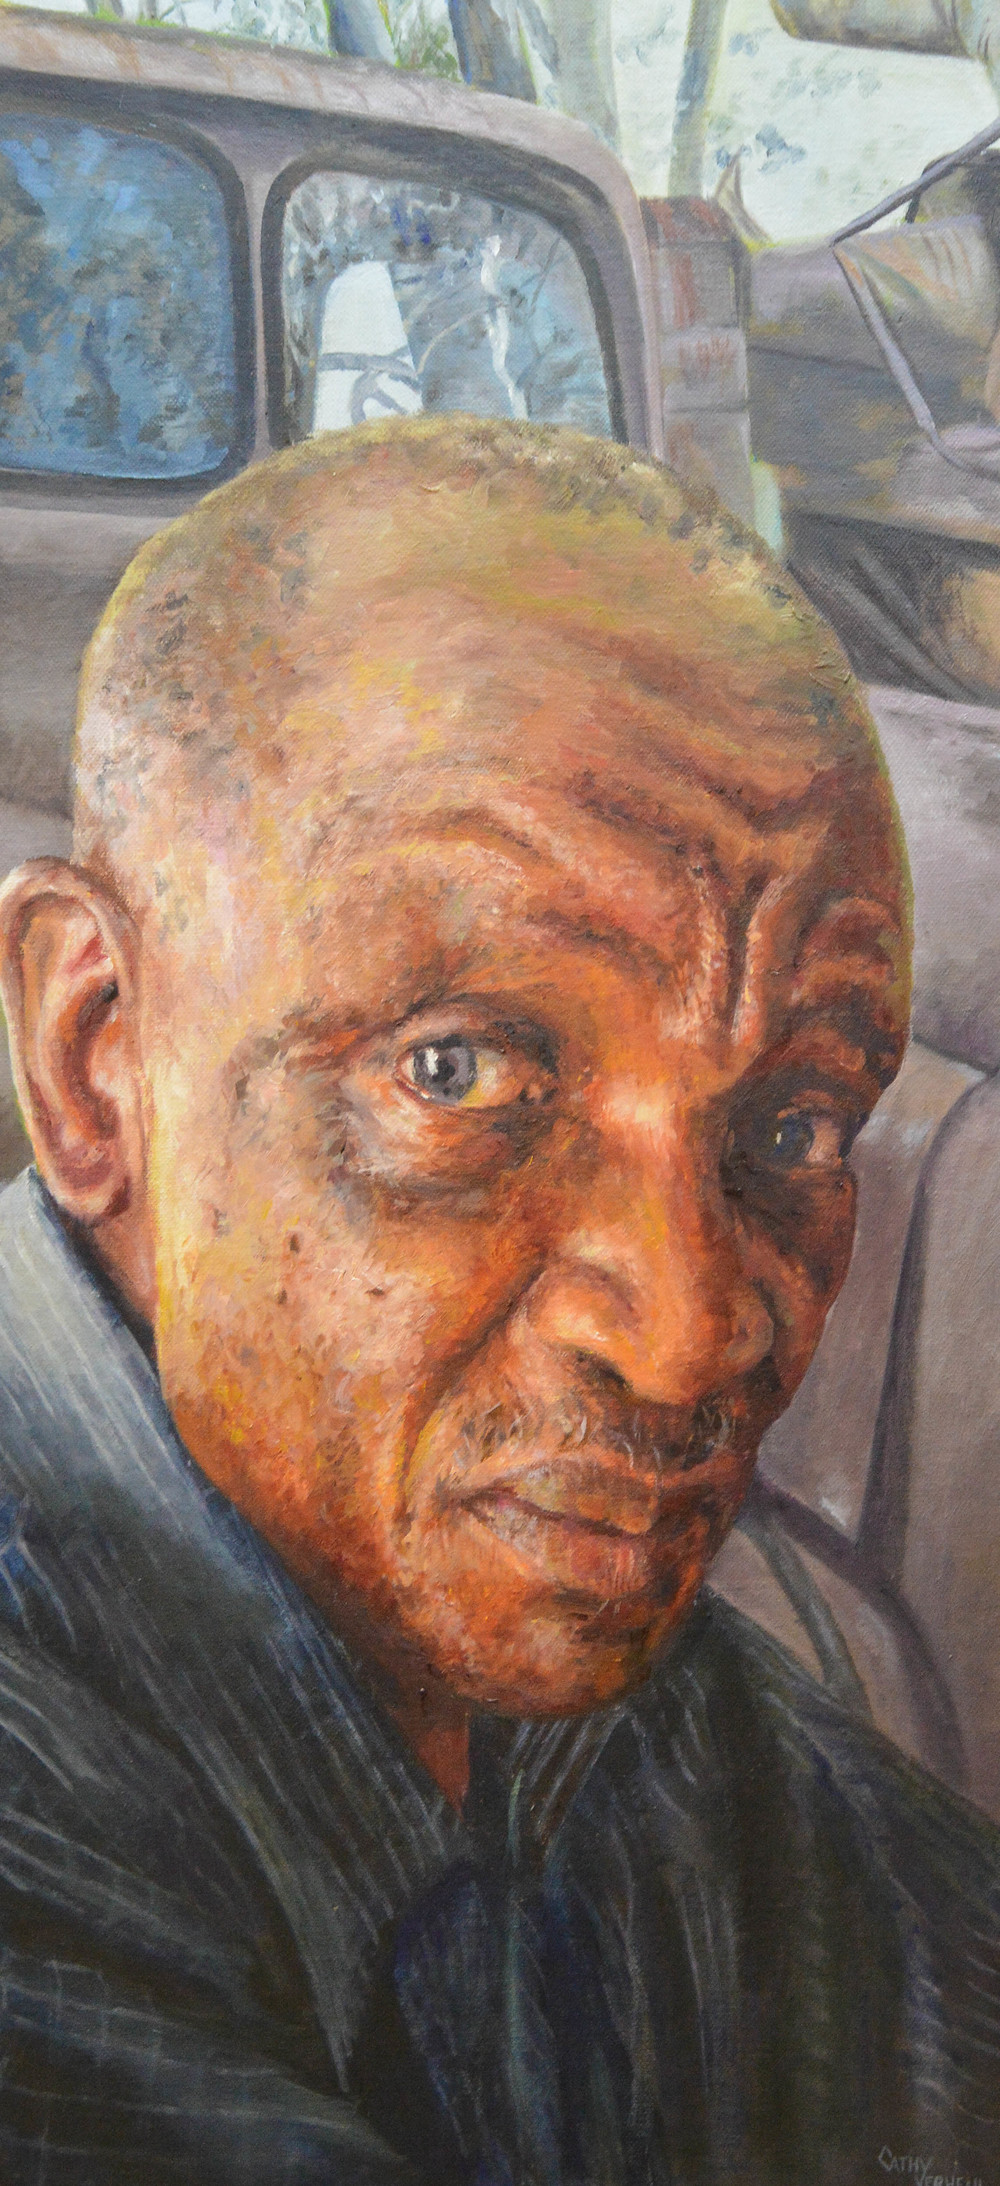 The winning painting from the Rotary Portrait Award by Cathy Verheul